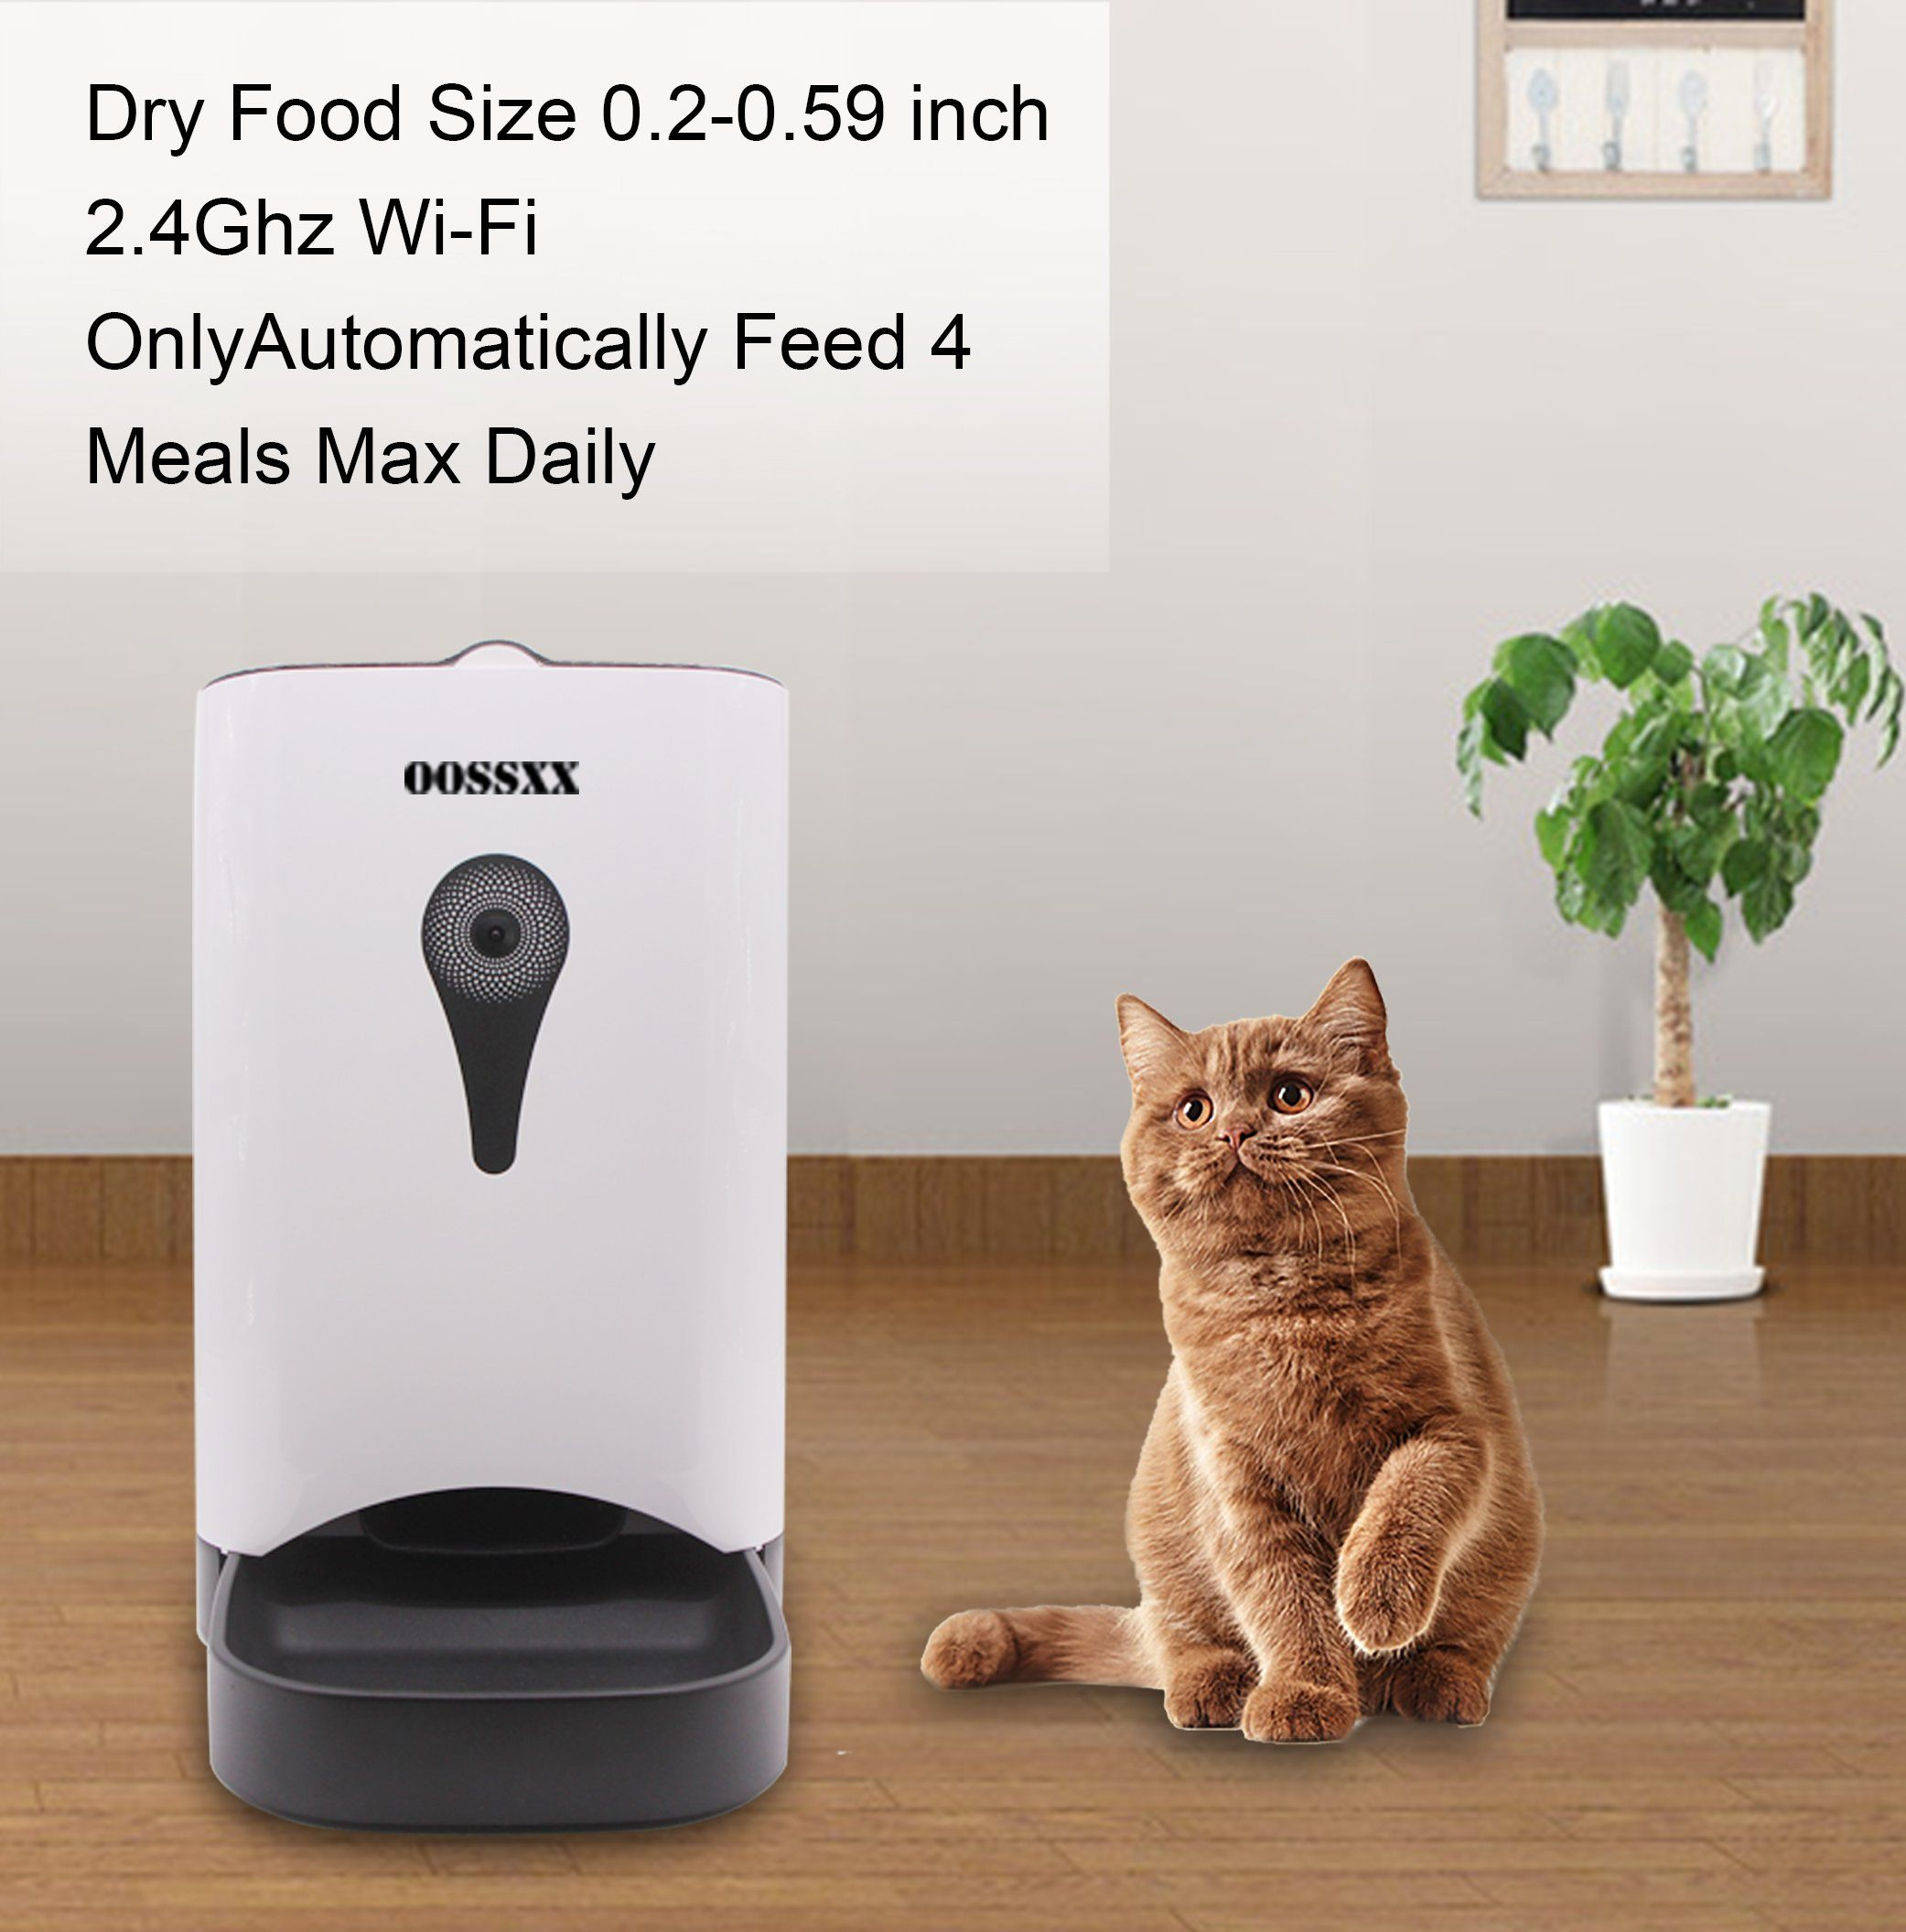 petsafe pet center shop dog and automatic feed cat en product petcostore petco feeder smart